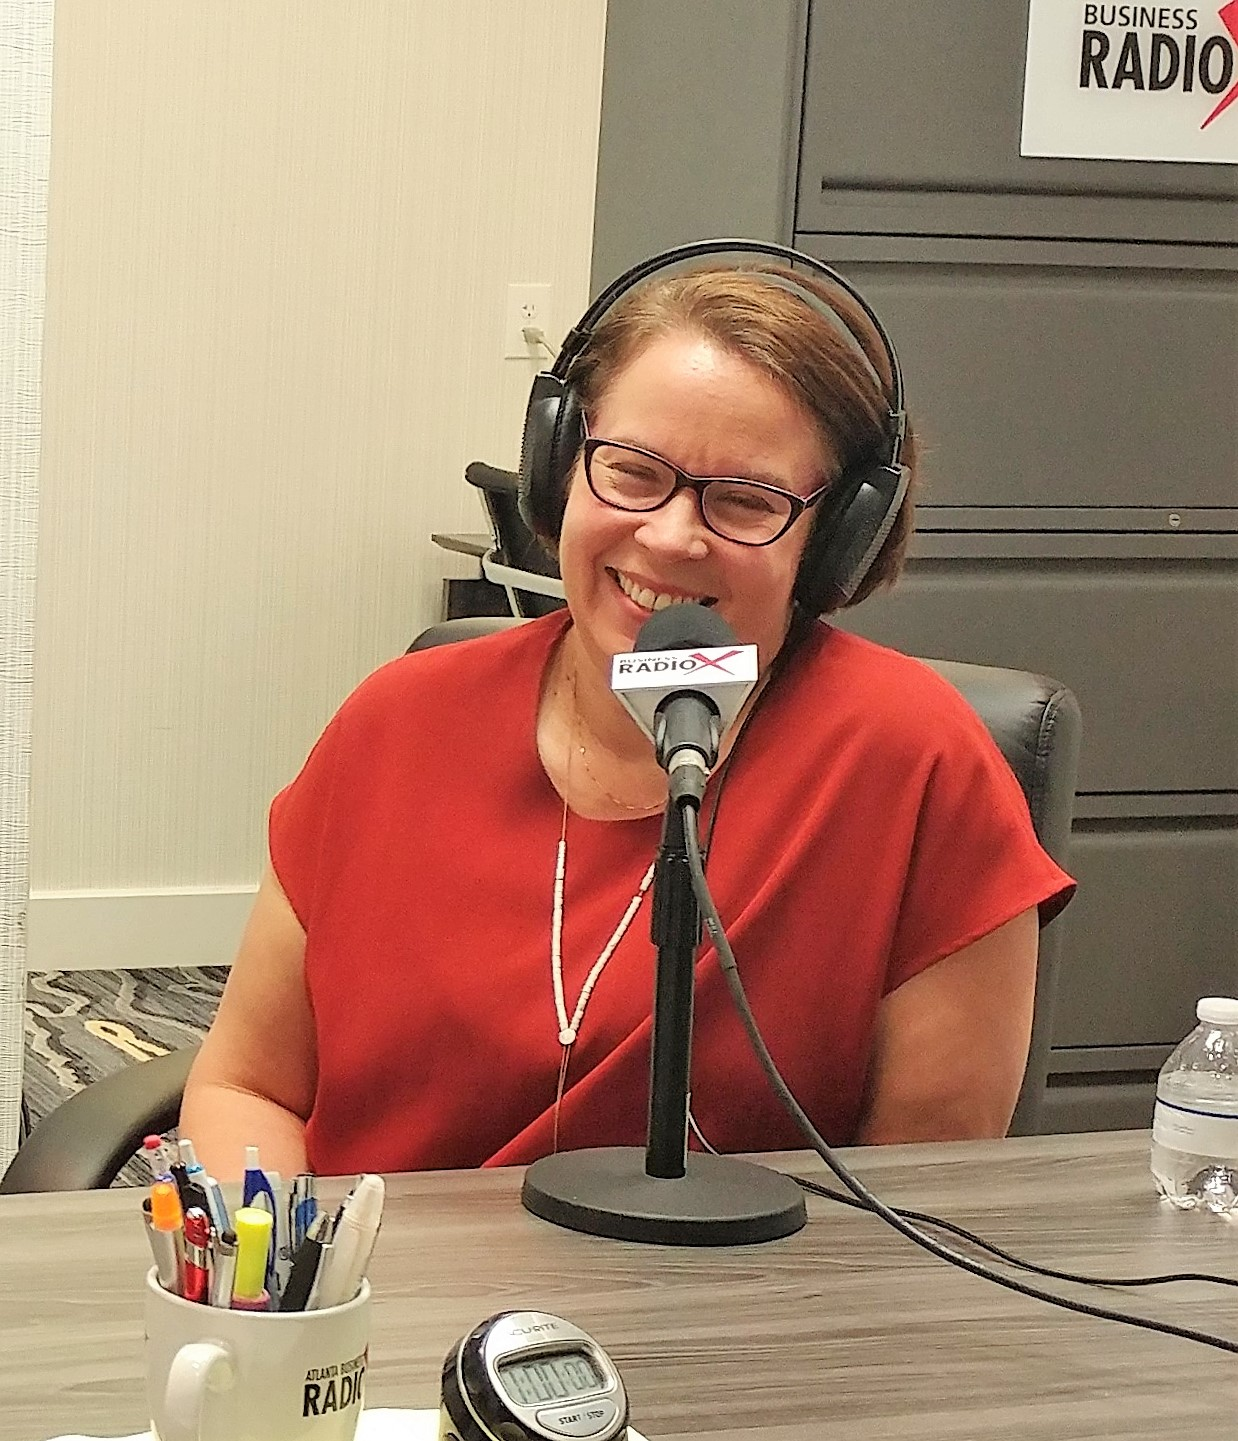 Dr. Laura Crawley on Business RadioX